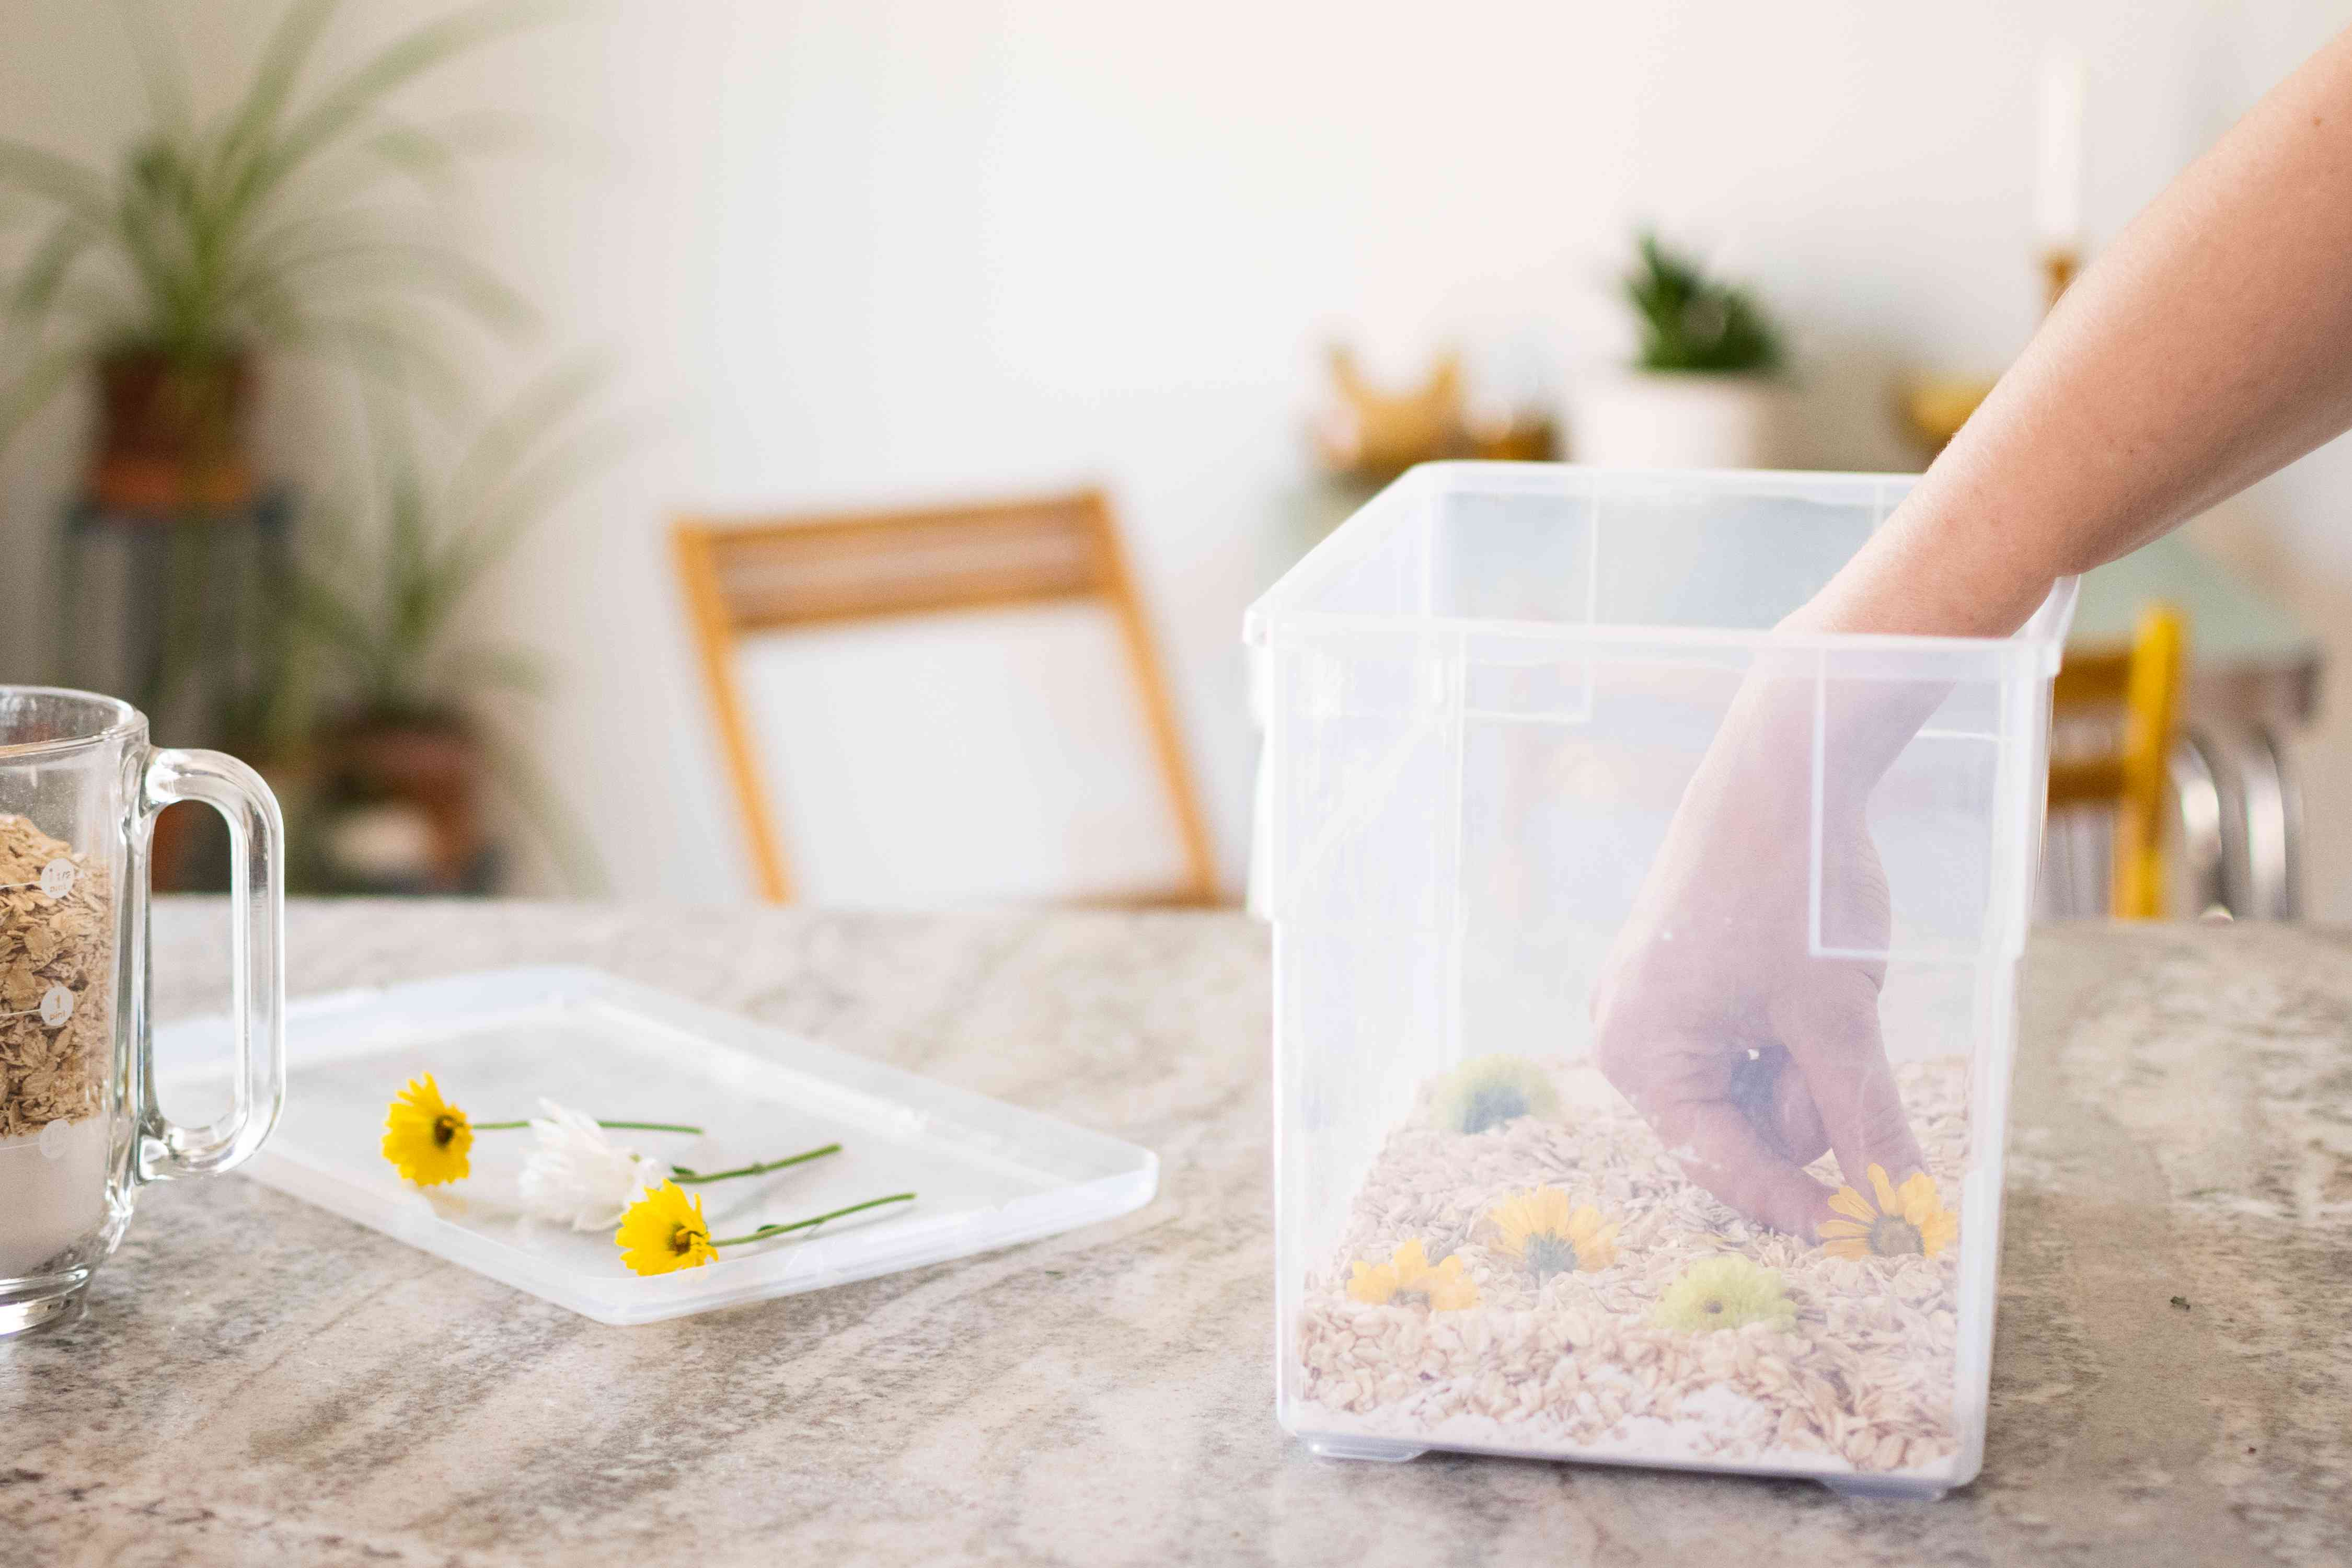 Yellow and white flowers placed in plastic bin with oats and borax